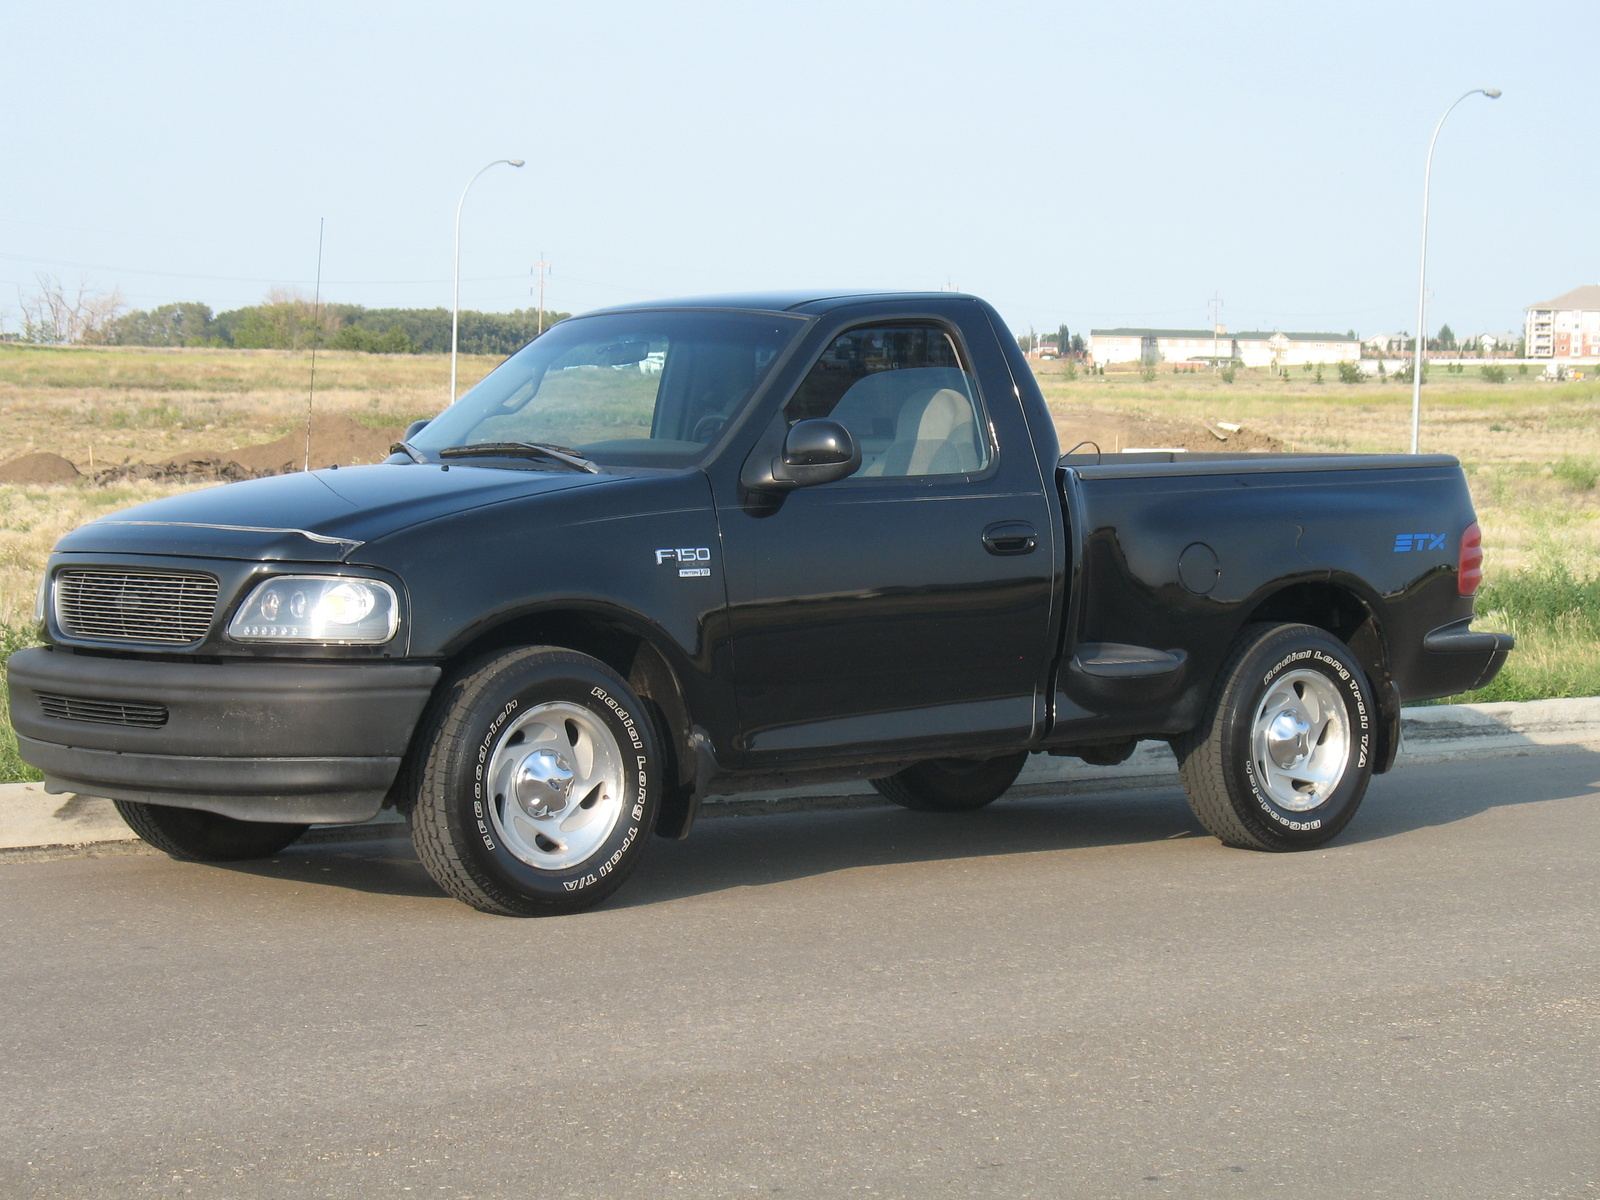 1998 Ford F-150 - Exterior Pictures